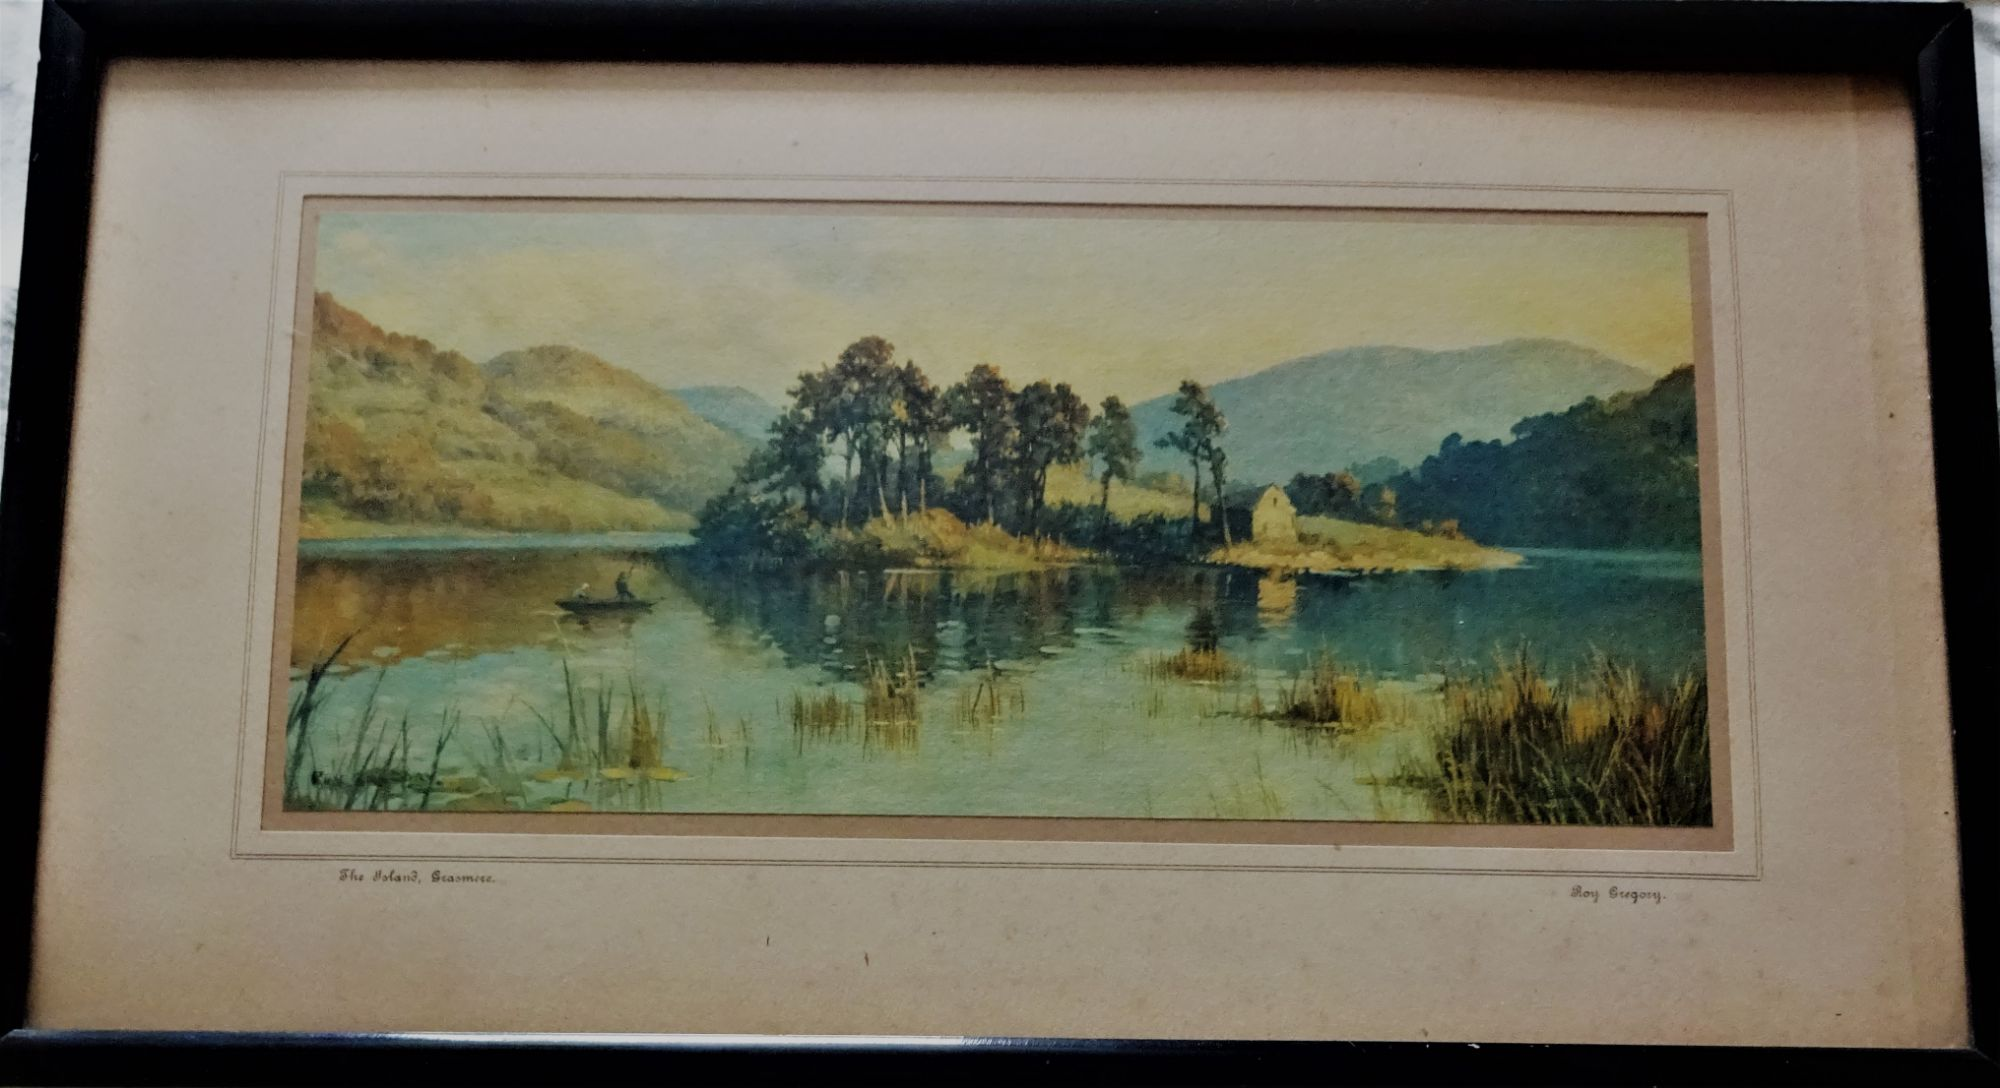 Grasmere Island, Lake District, England, chromolithograph, Roy Gregory, c1940. Framed.